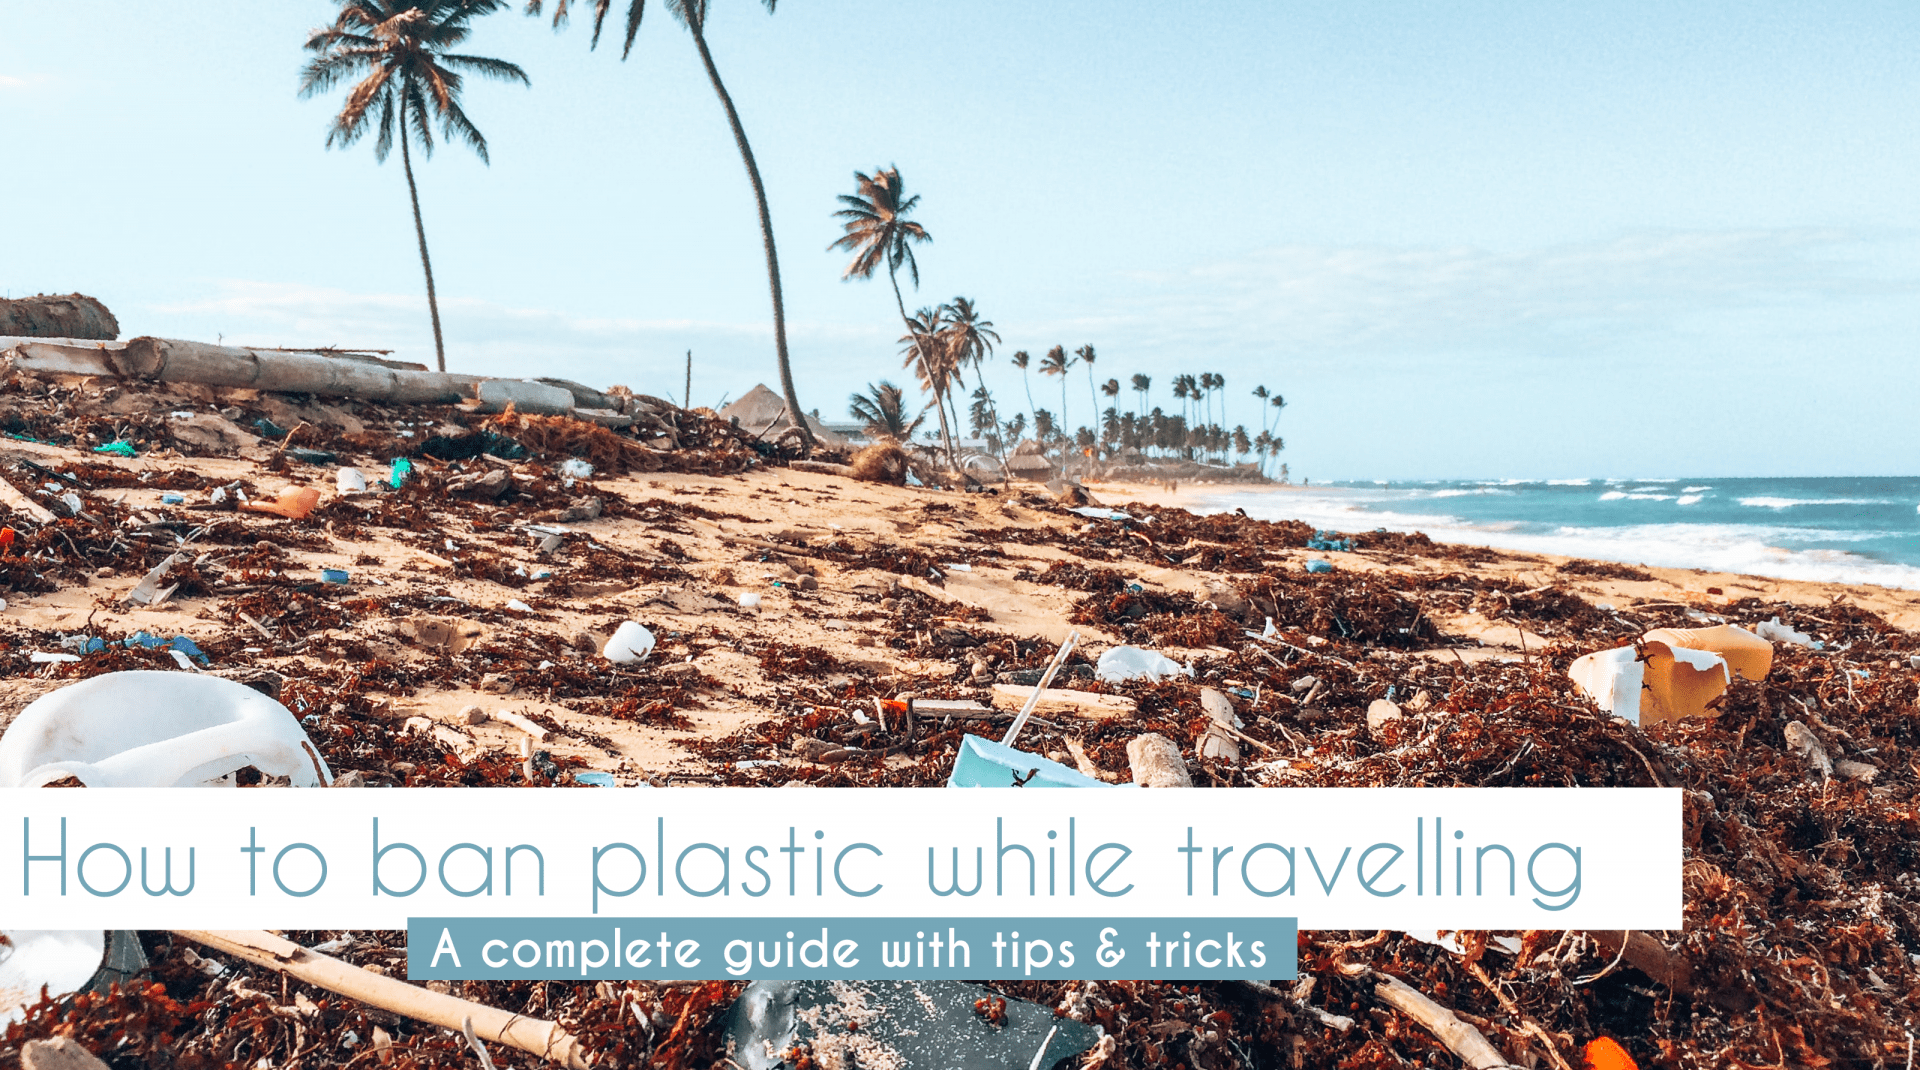 Plastic waste travelling